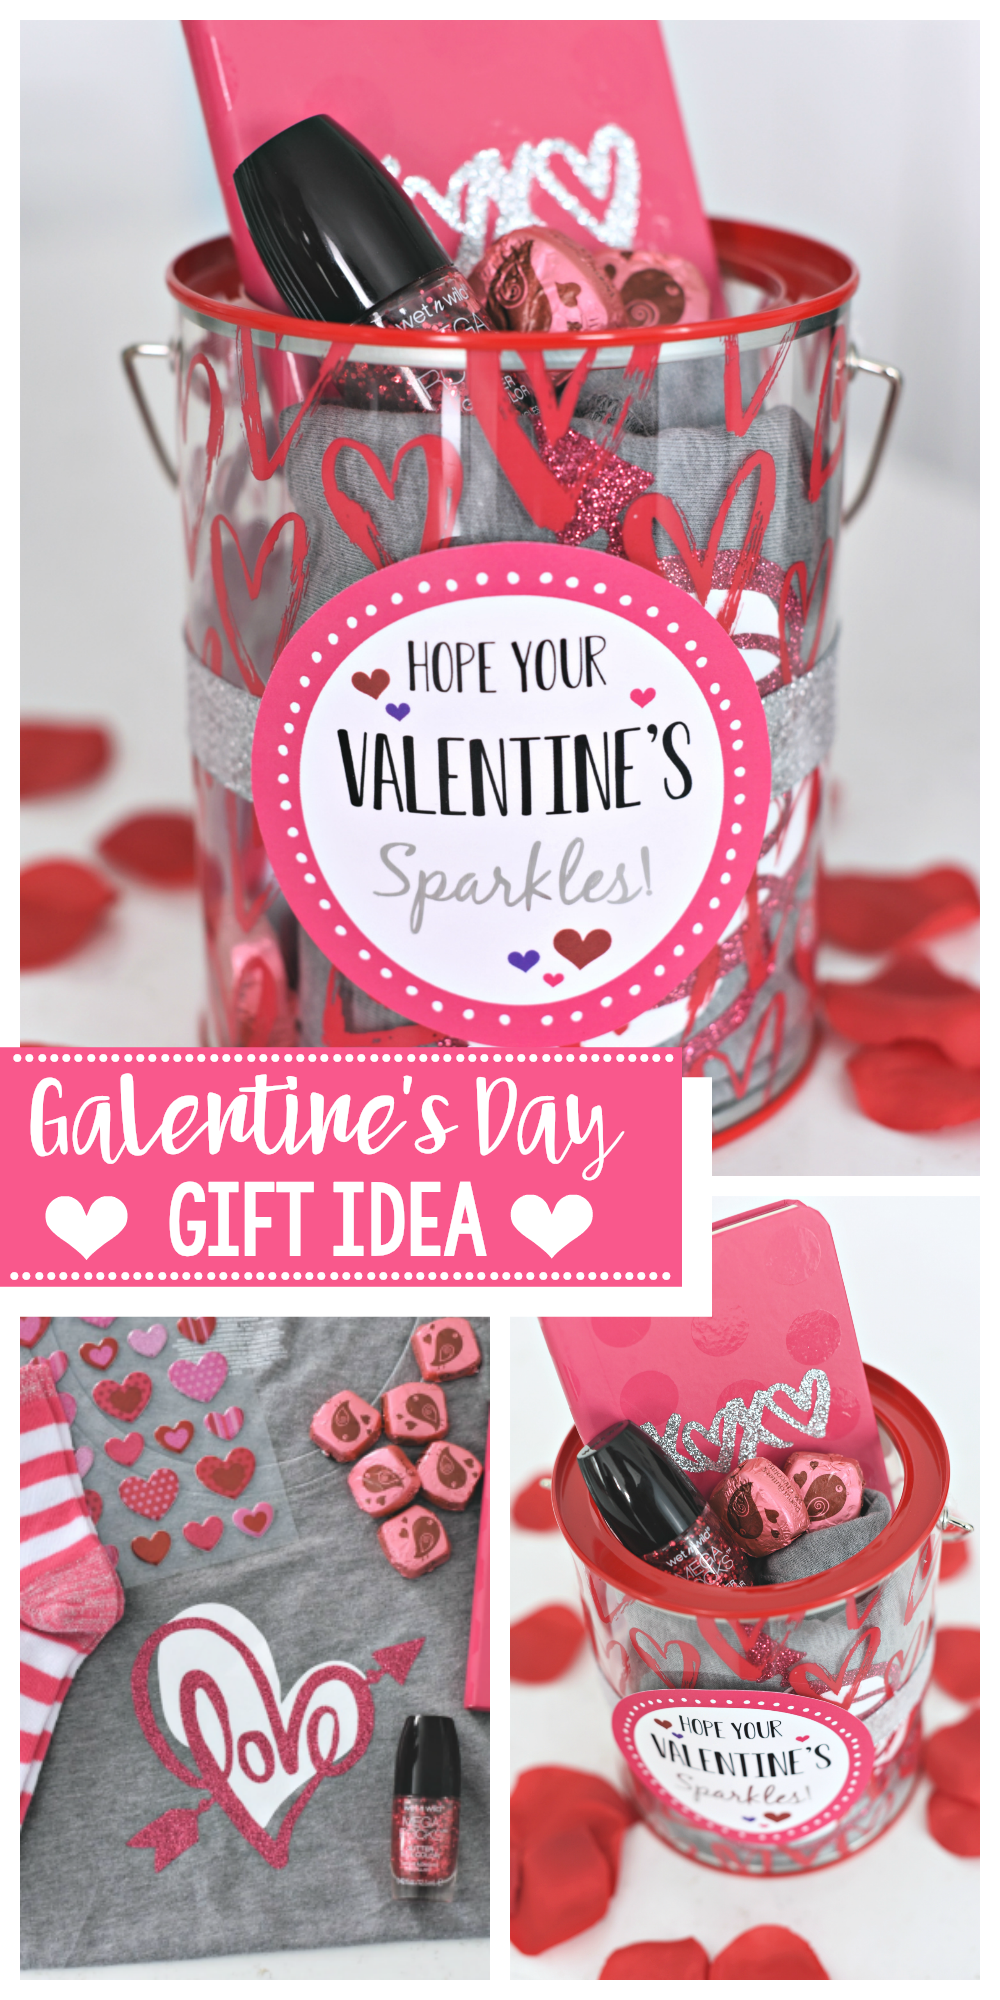 Cute Galentine's Day Gift Idea! Surprise your friends with this cute sparkle themed Valentine's Day gift idea to brighten their day! #galentinesday #valentinesday